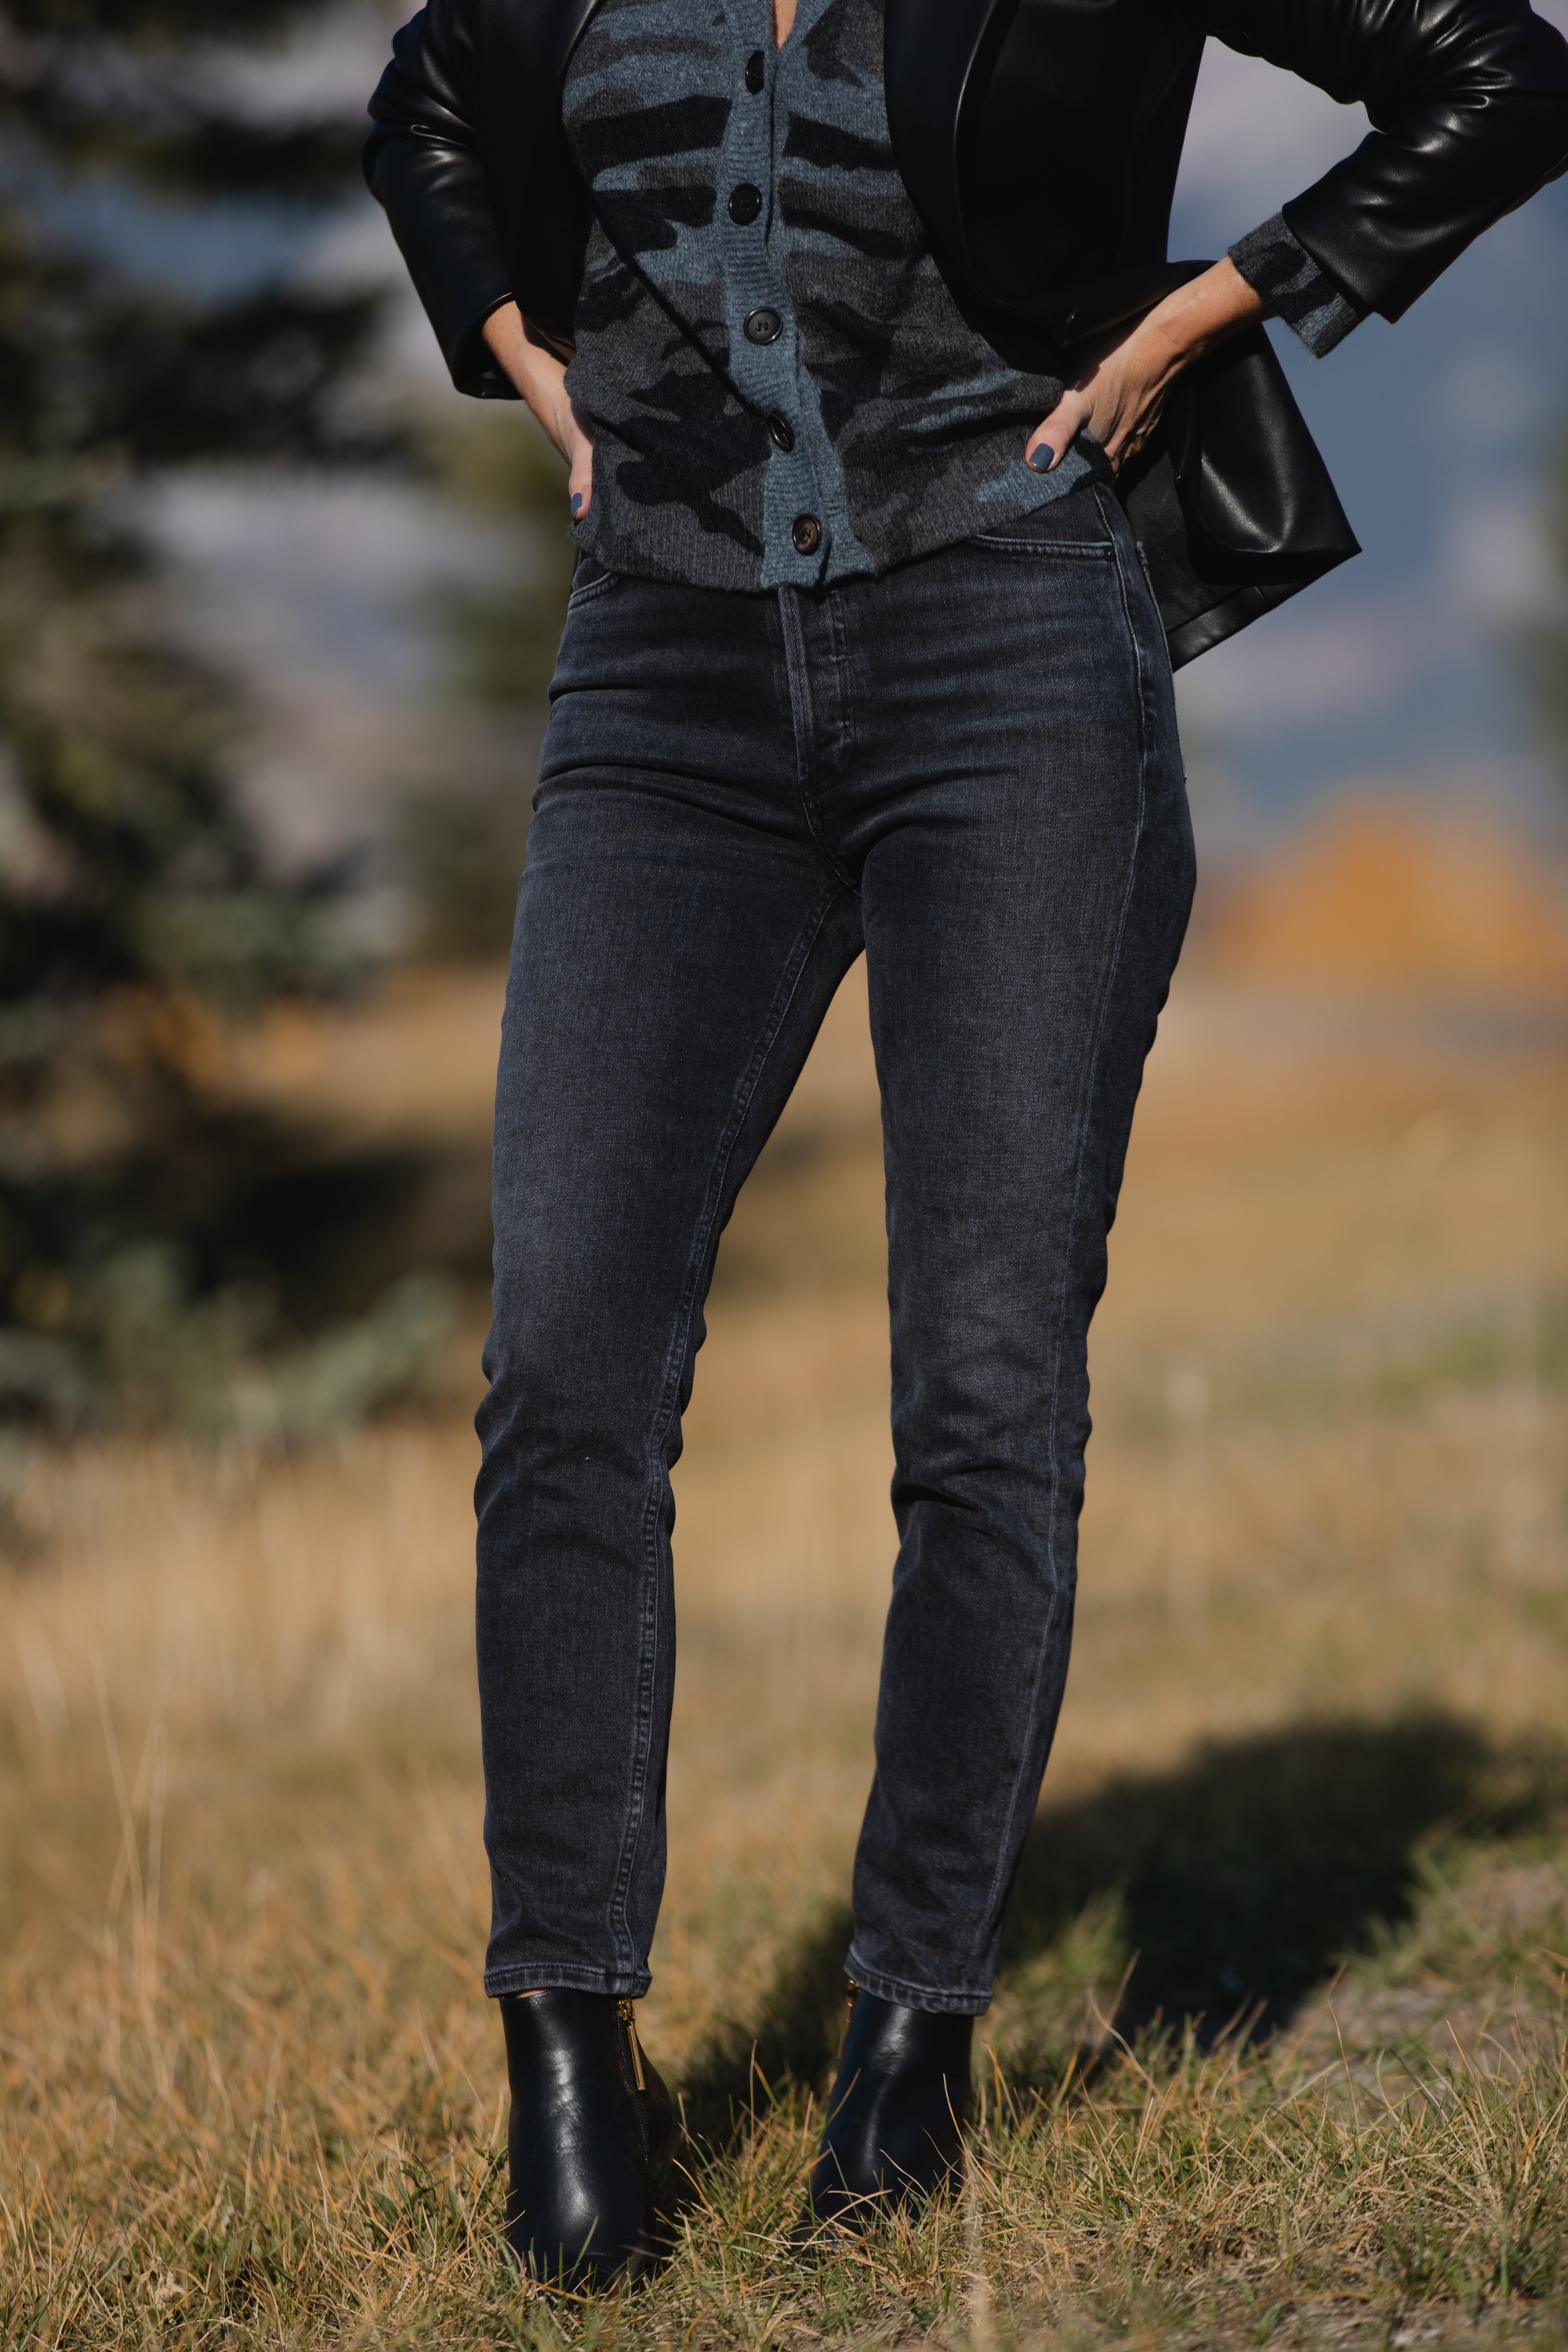 Favorite Fall Jackets, Erin Busbee of Busbee Style holding a black faux leather blazer by Theory and wearing dark gray wash Agolde Nico jeans, black Louise et Cie booties, and Rails camo cardigan sweater in Telluride, Colorado